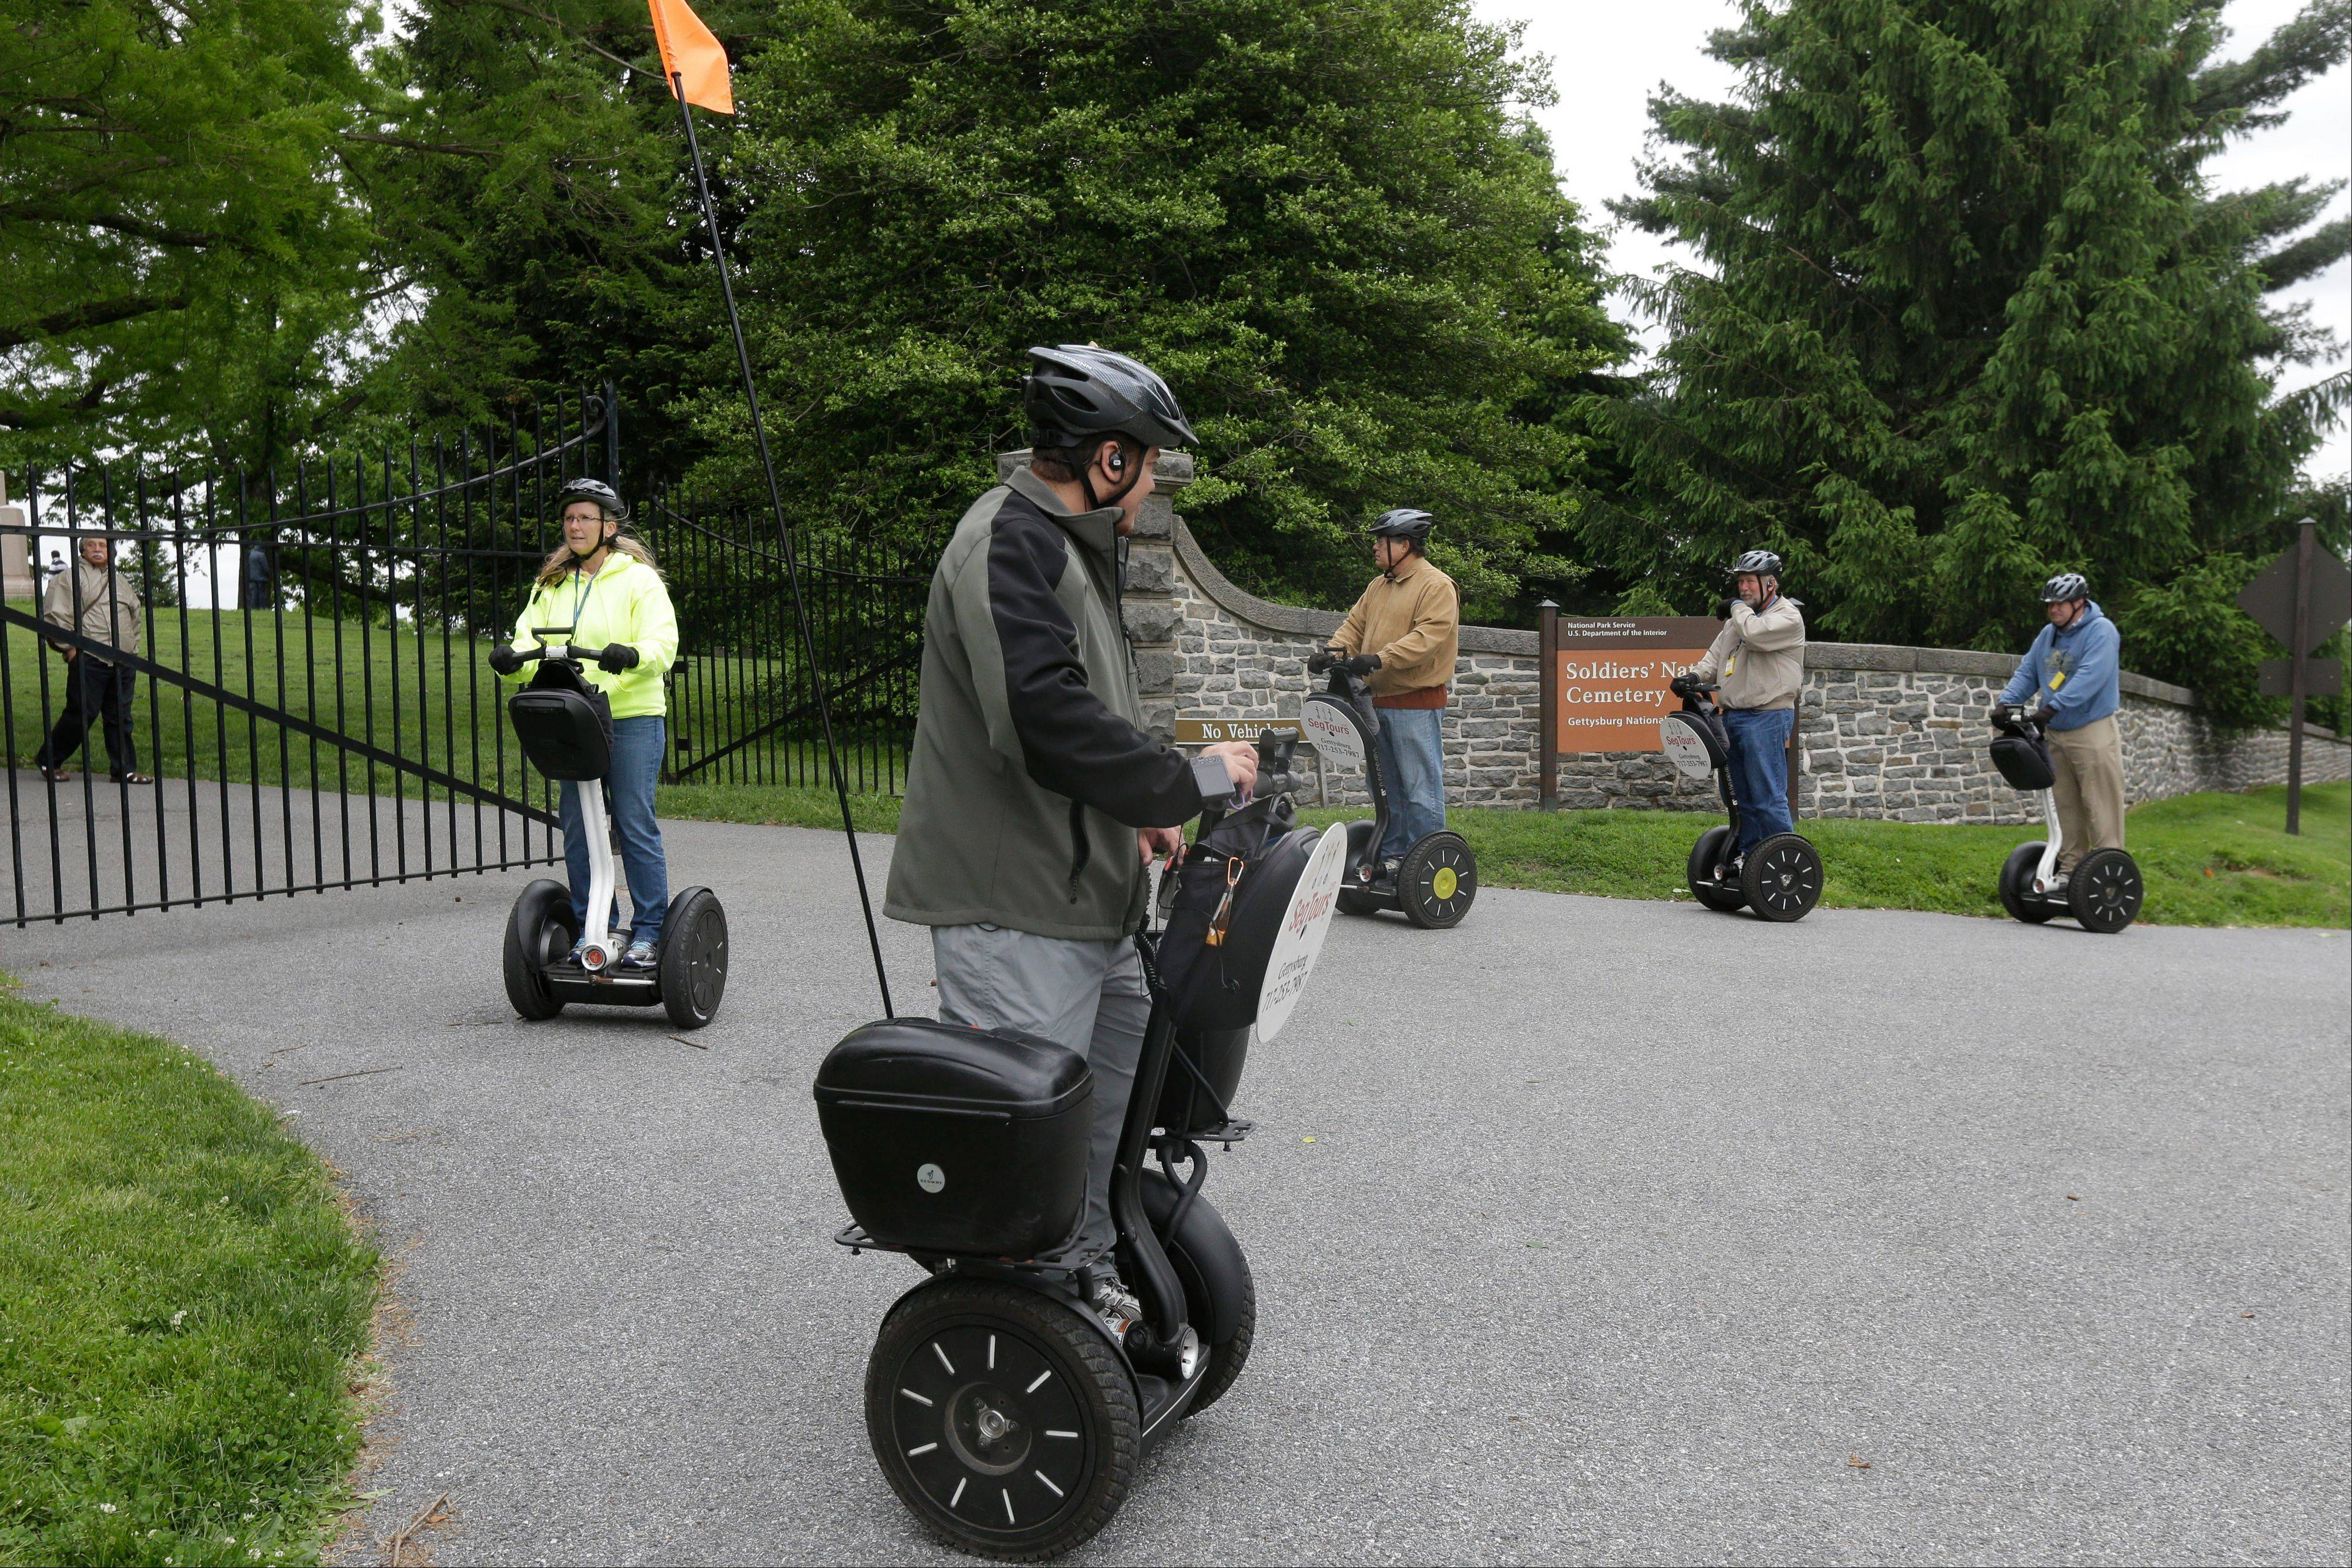 Visitors riding Segways tour Gettysburg National Military Park.